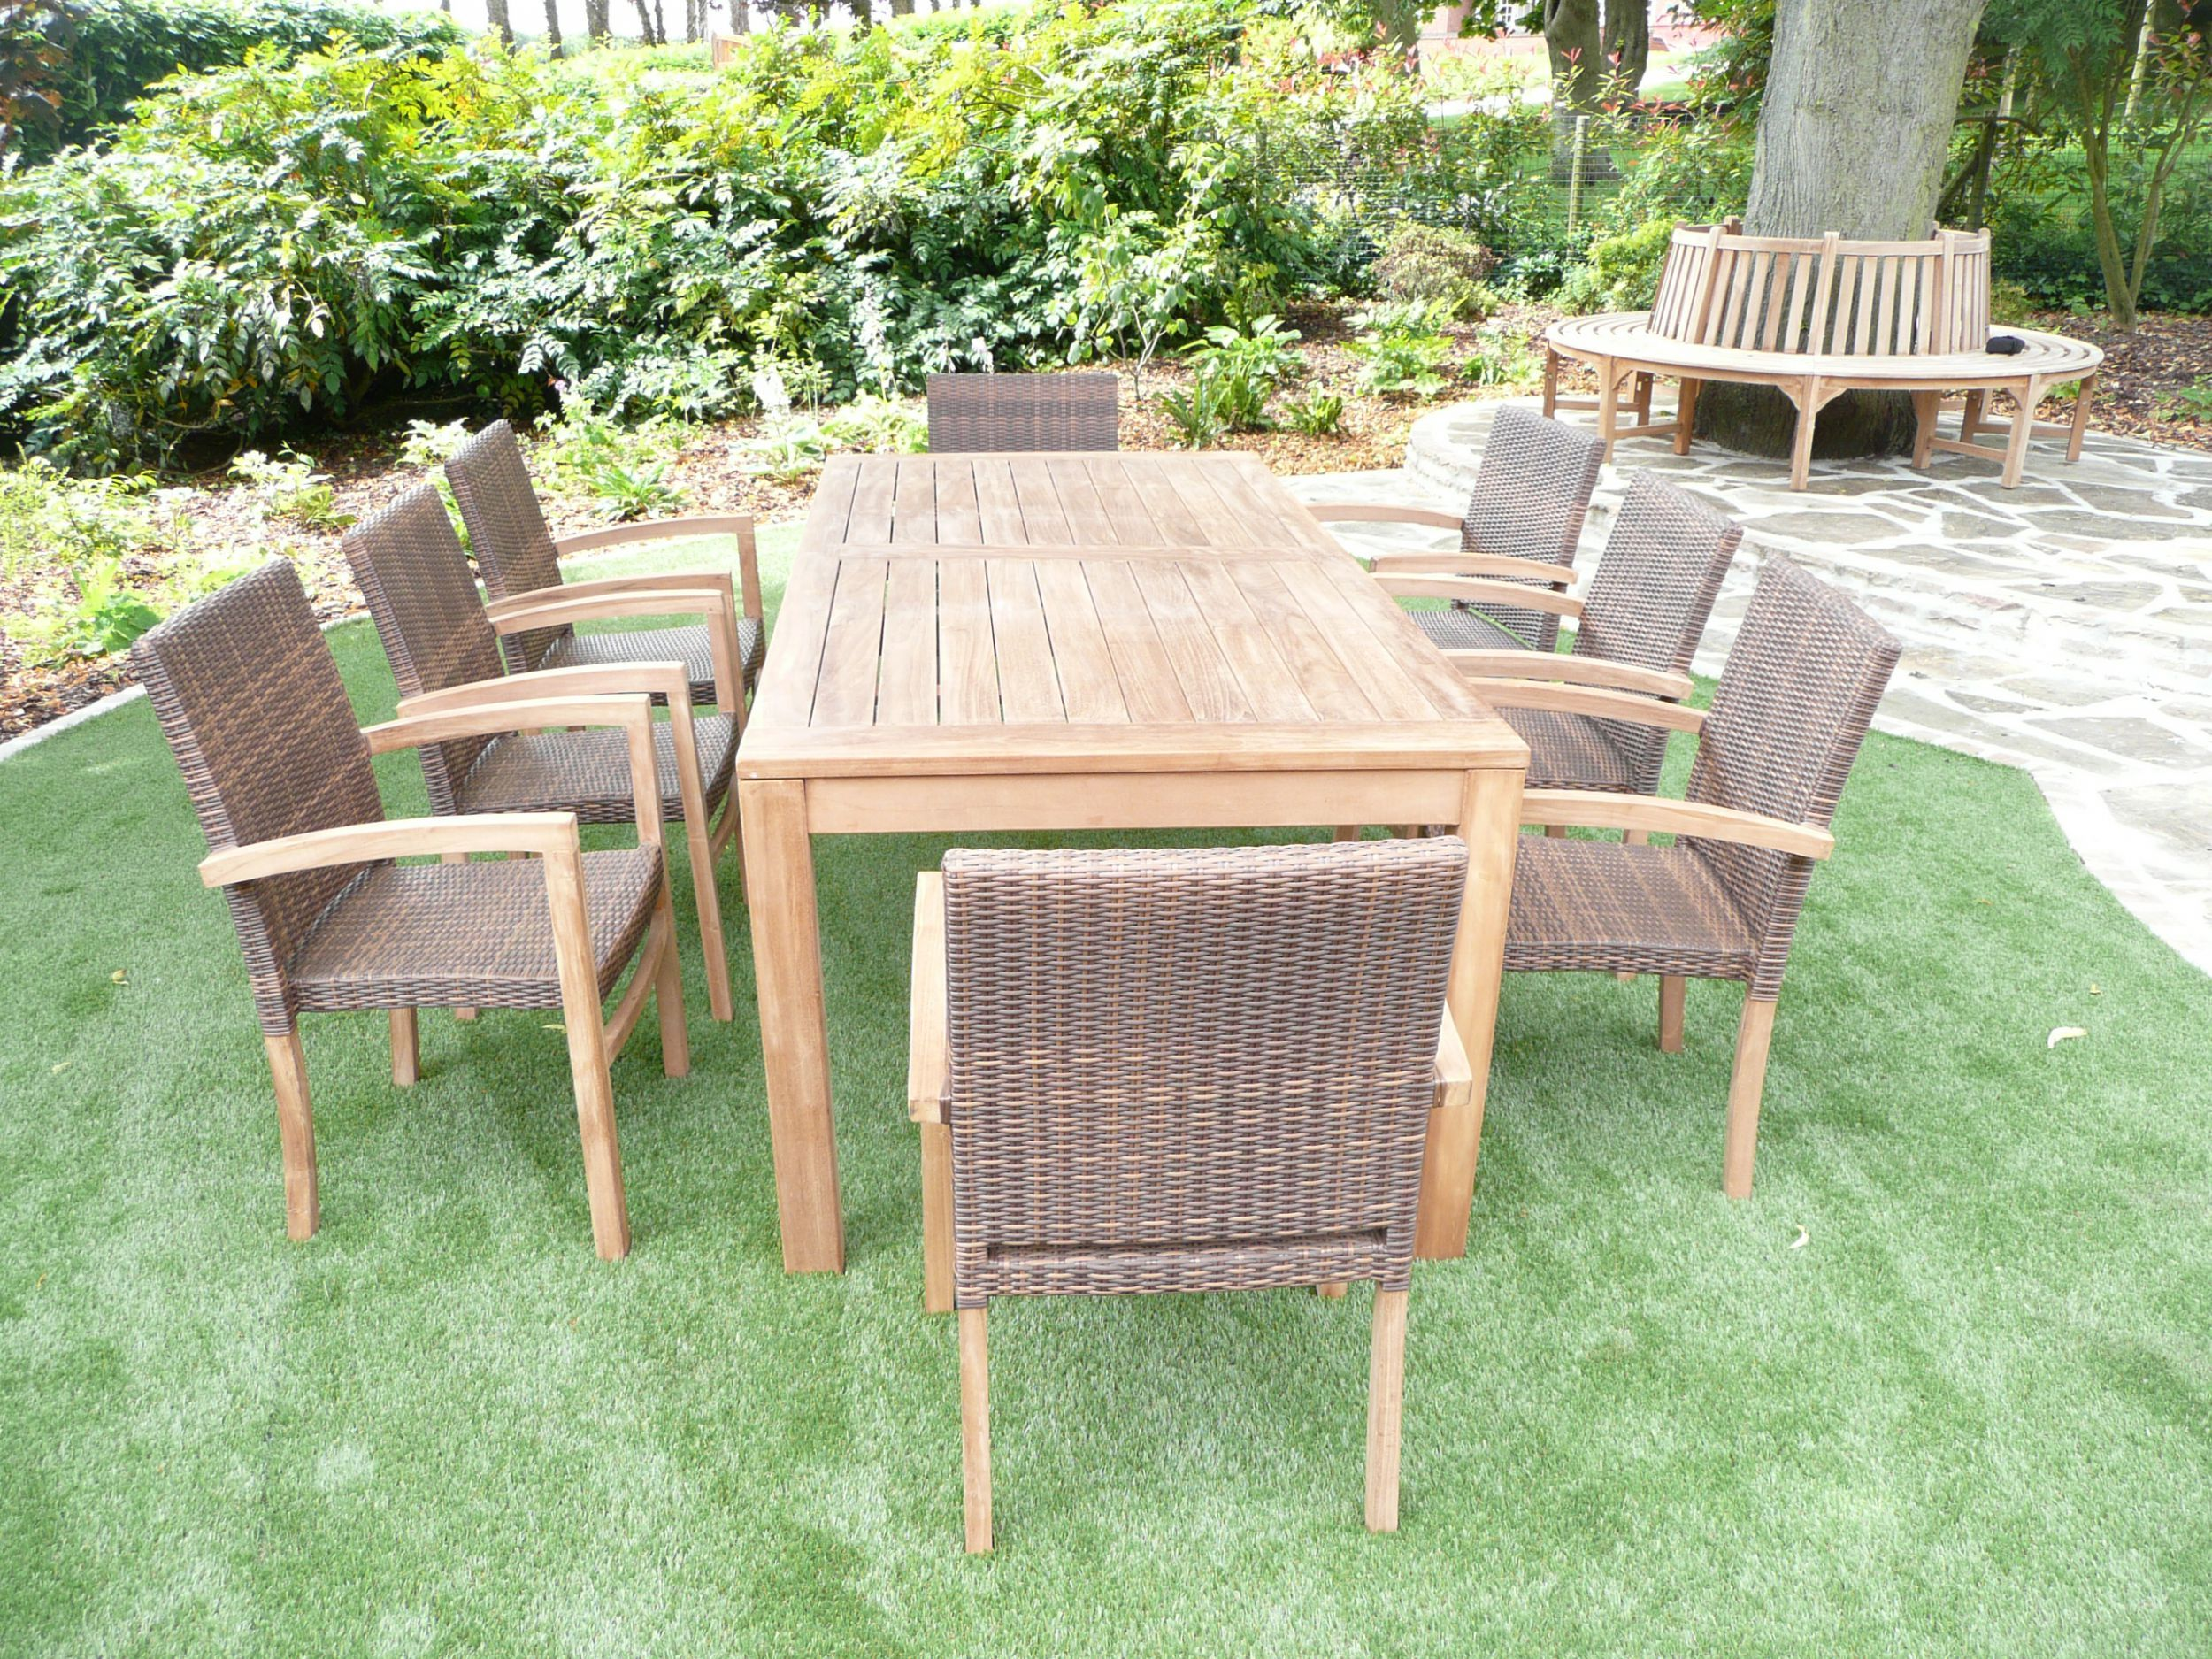 cannes 8 seater teak rattan garden furniture set humber imports - Garden Furniture 8 Seater